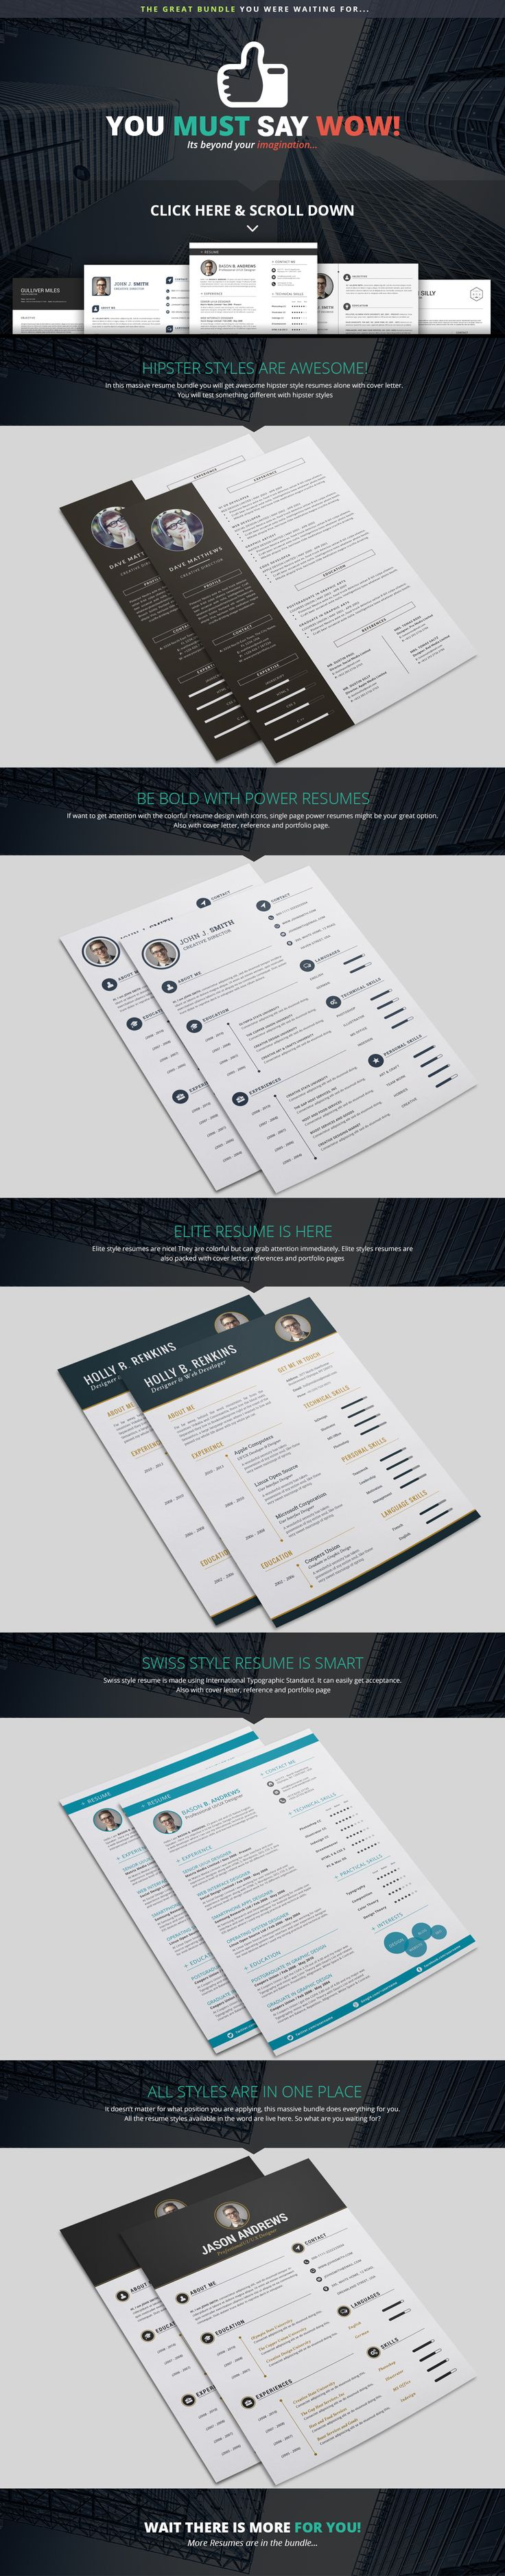 Hagan Blount I design infographics and infographic